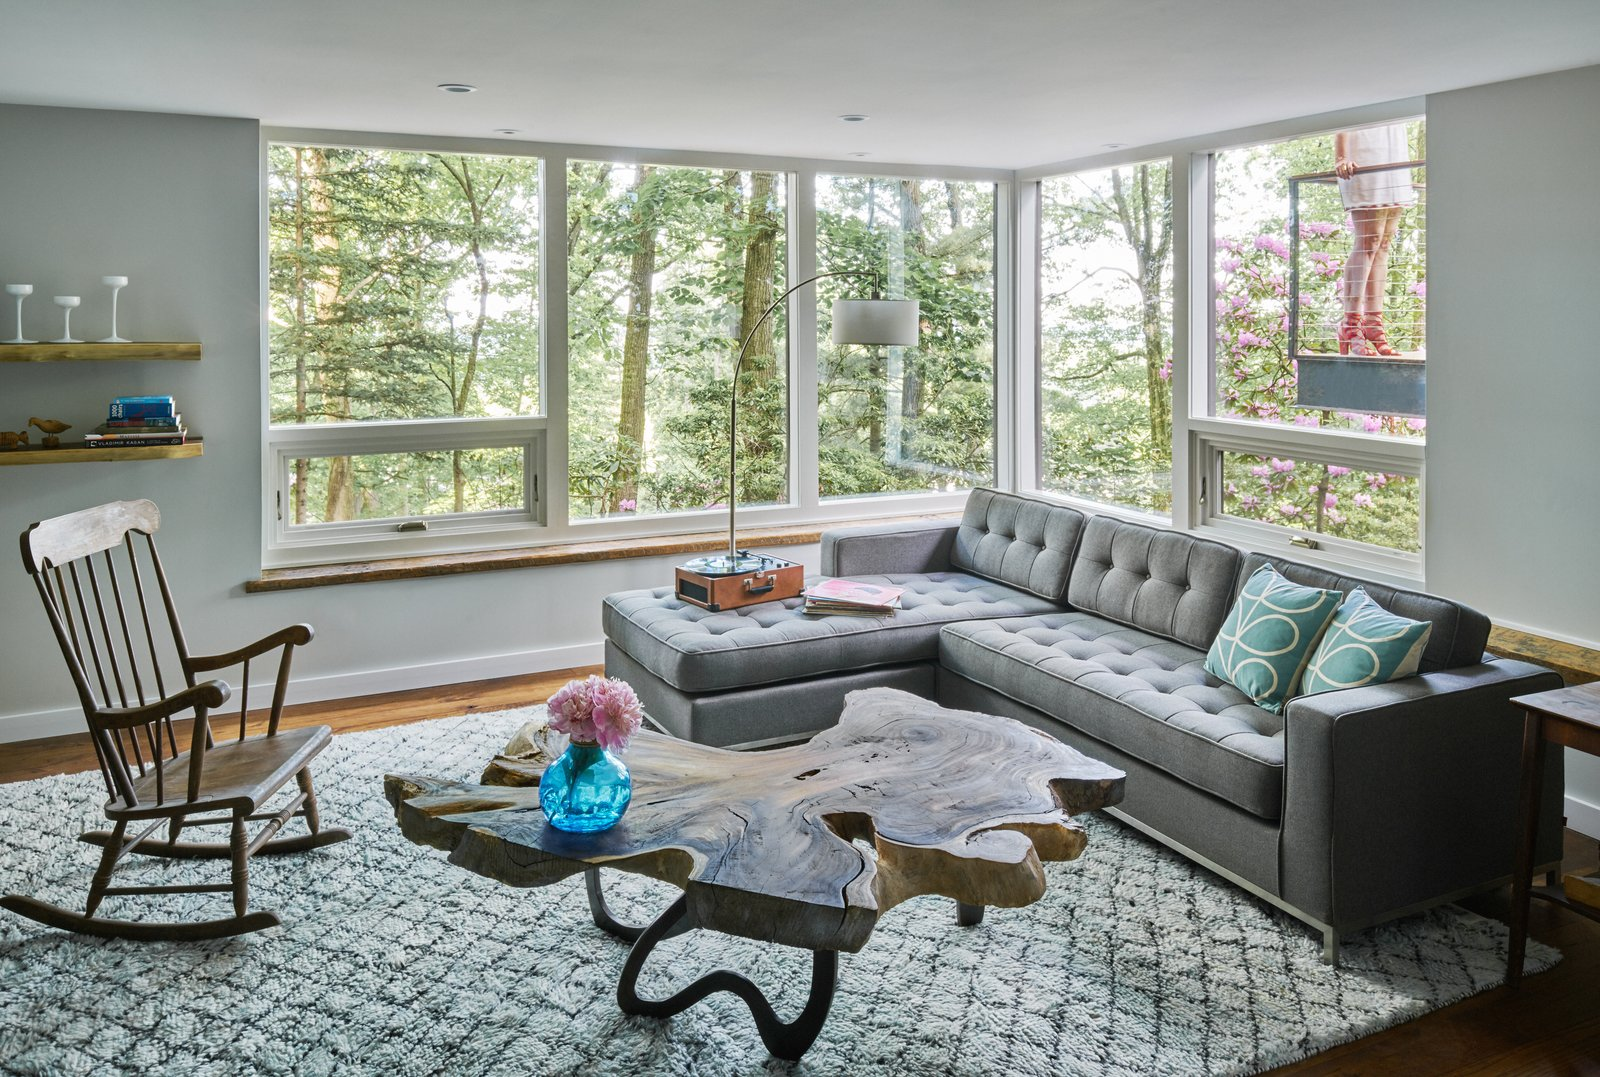 Trees, Storage, Table, Picture, Sofa, End Tables, Coffee Tables, Casement, Shelves, Sectional, Storage, Medium Hardwood, and Living The family room features custom-designed furnishings by the homeowner using exotic wood slabs.  Best Living Shelves Photos from Highland Perch House